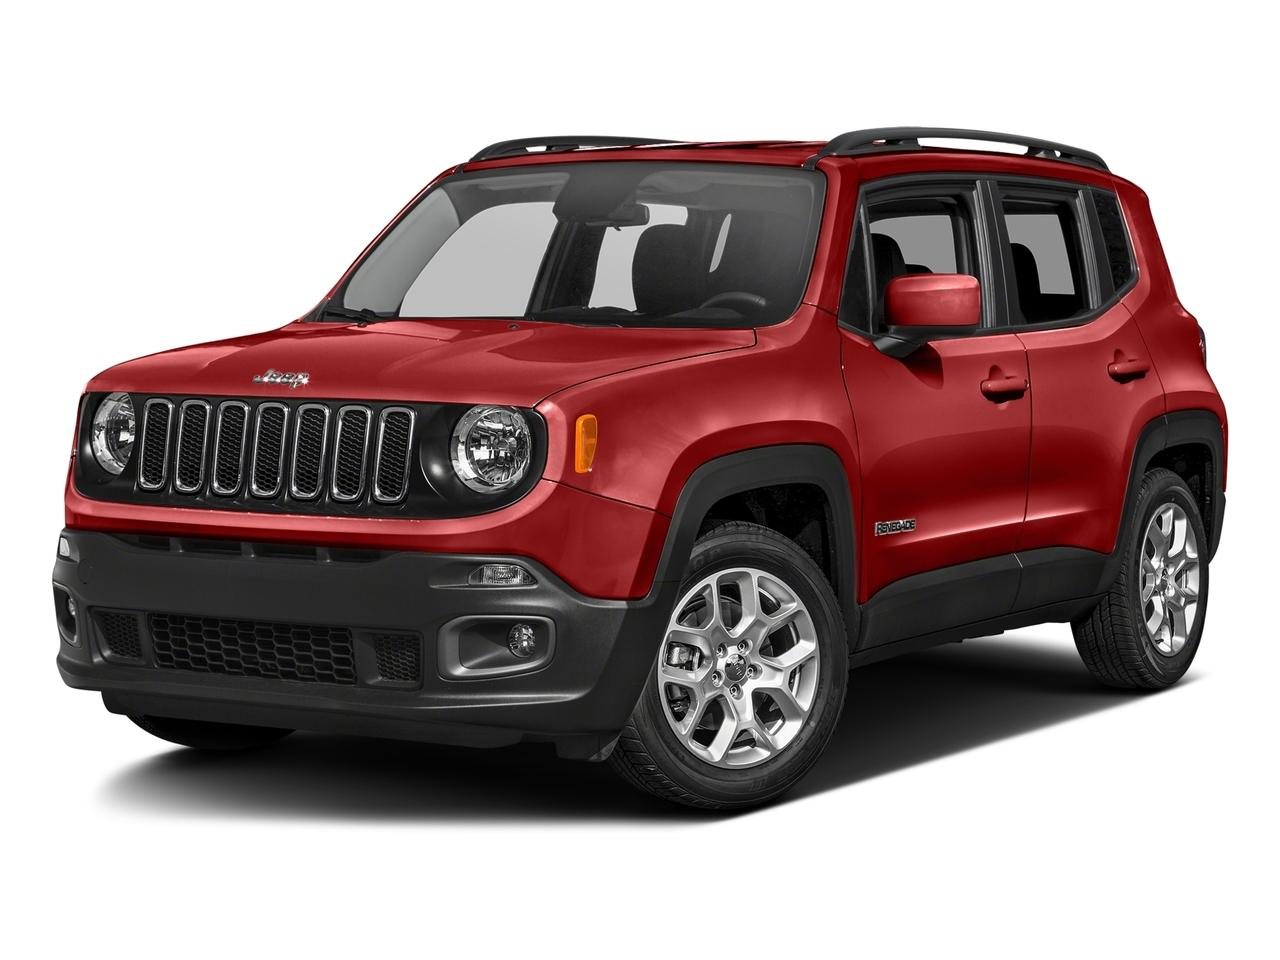 2017 Jeep Renegade Vehicle Photo in Vermilion, OH 44089